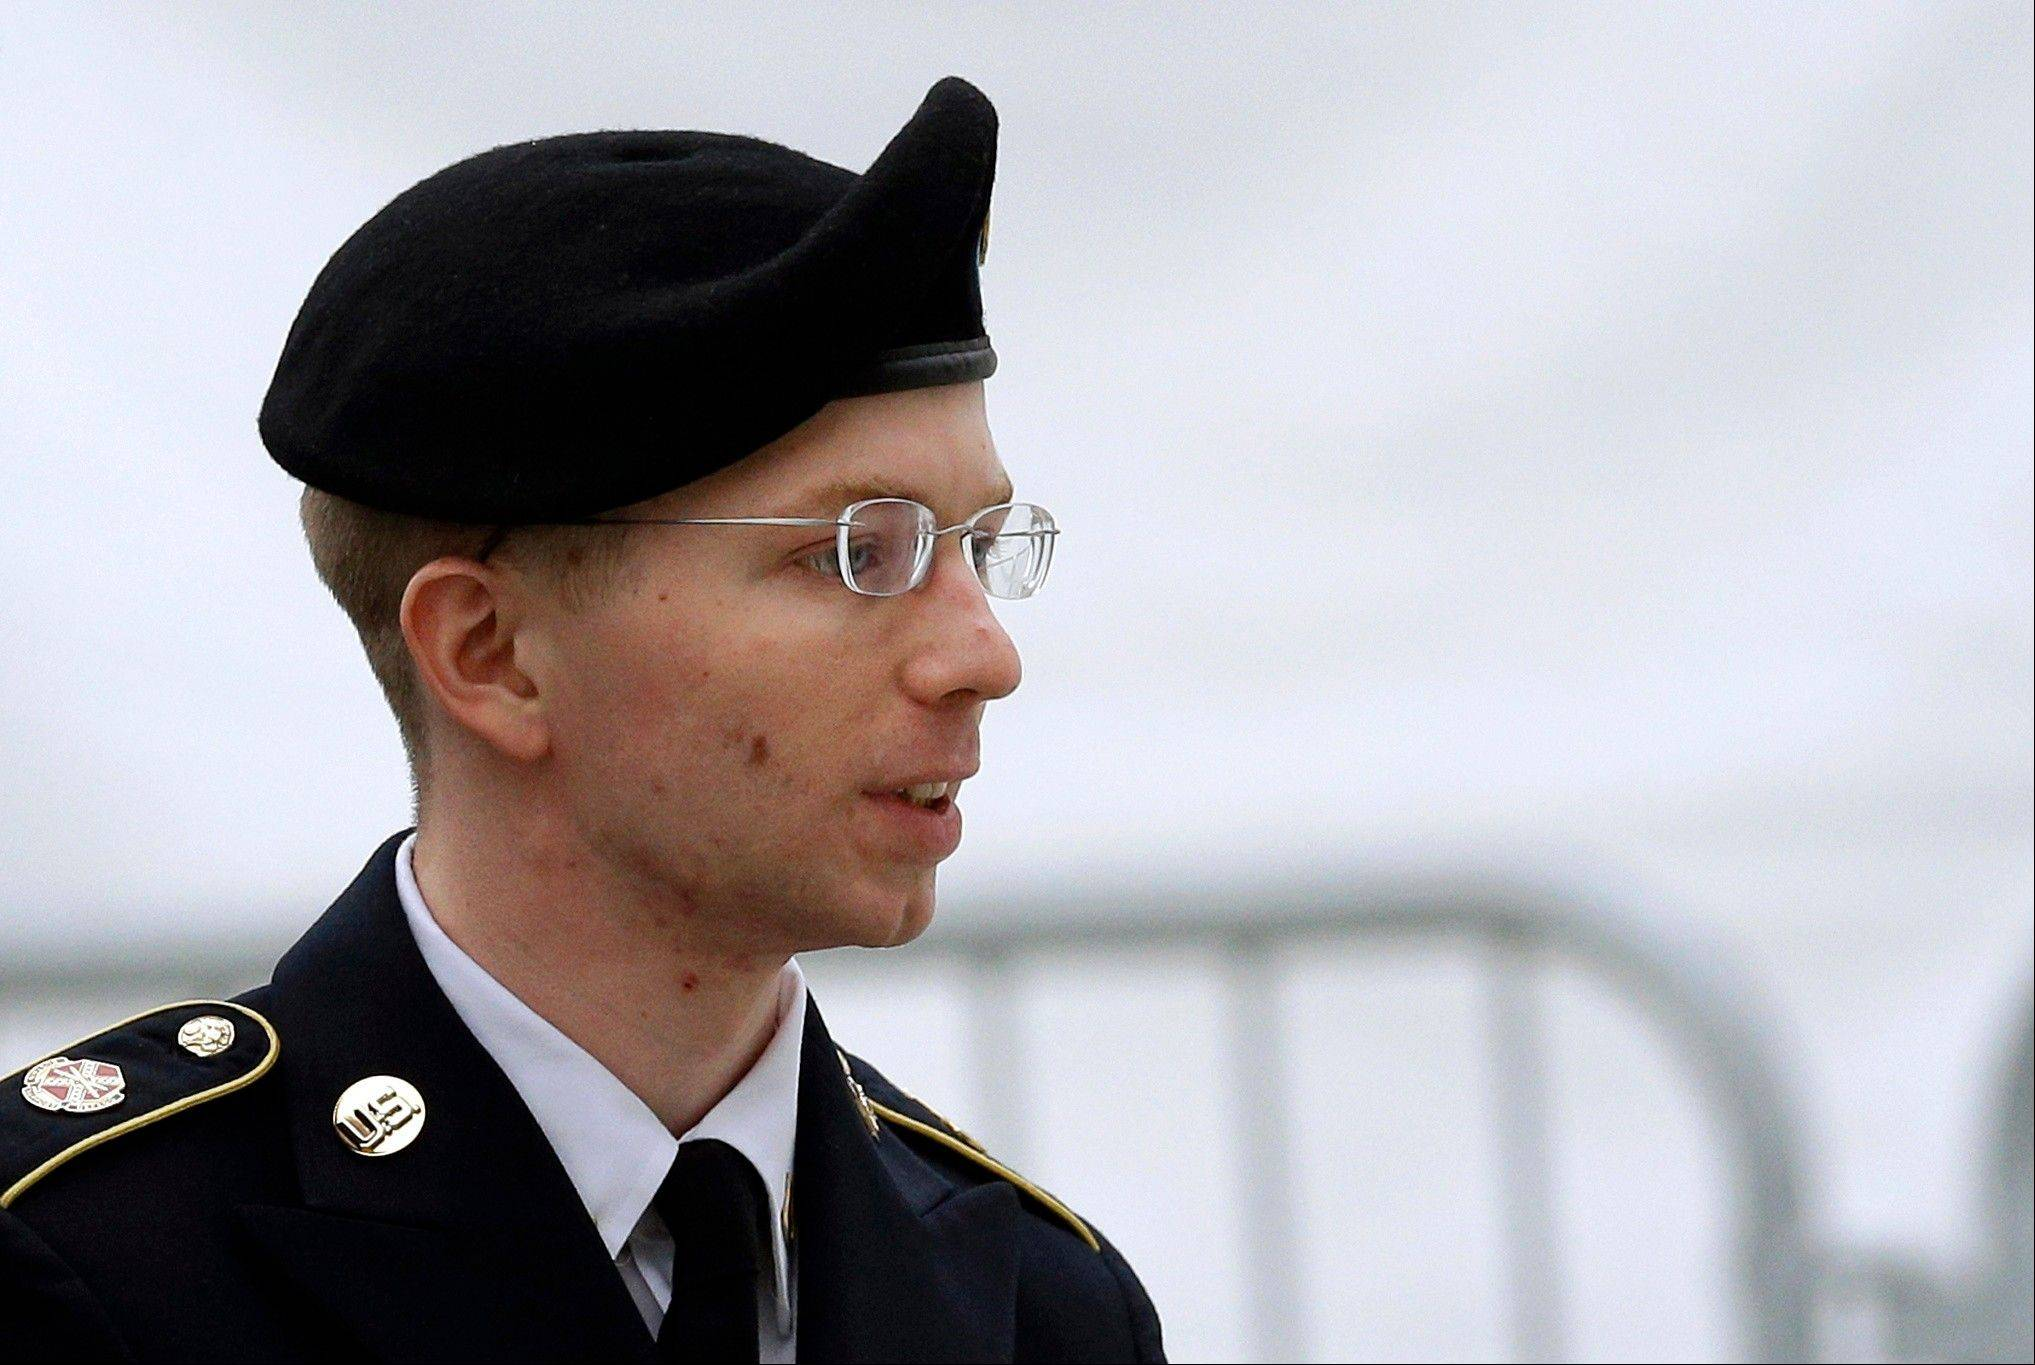 ASSOCIATED PRESSArmy Pfc. Bradley Manning Was arrested in Iraq more than three years ago and charged in the biggest leak of classified information in U.S. history.